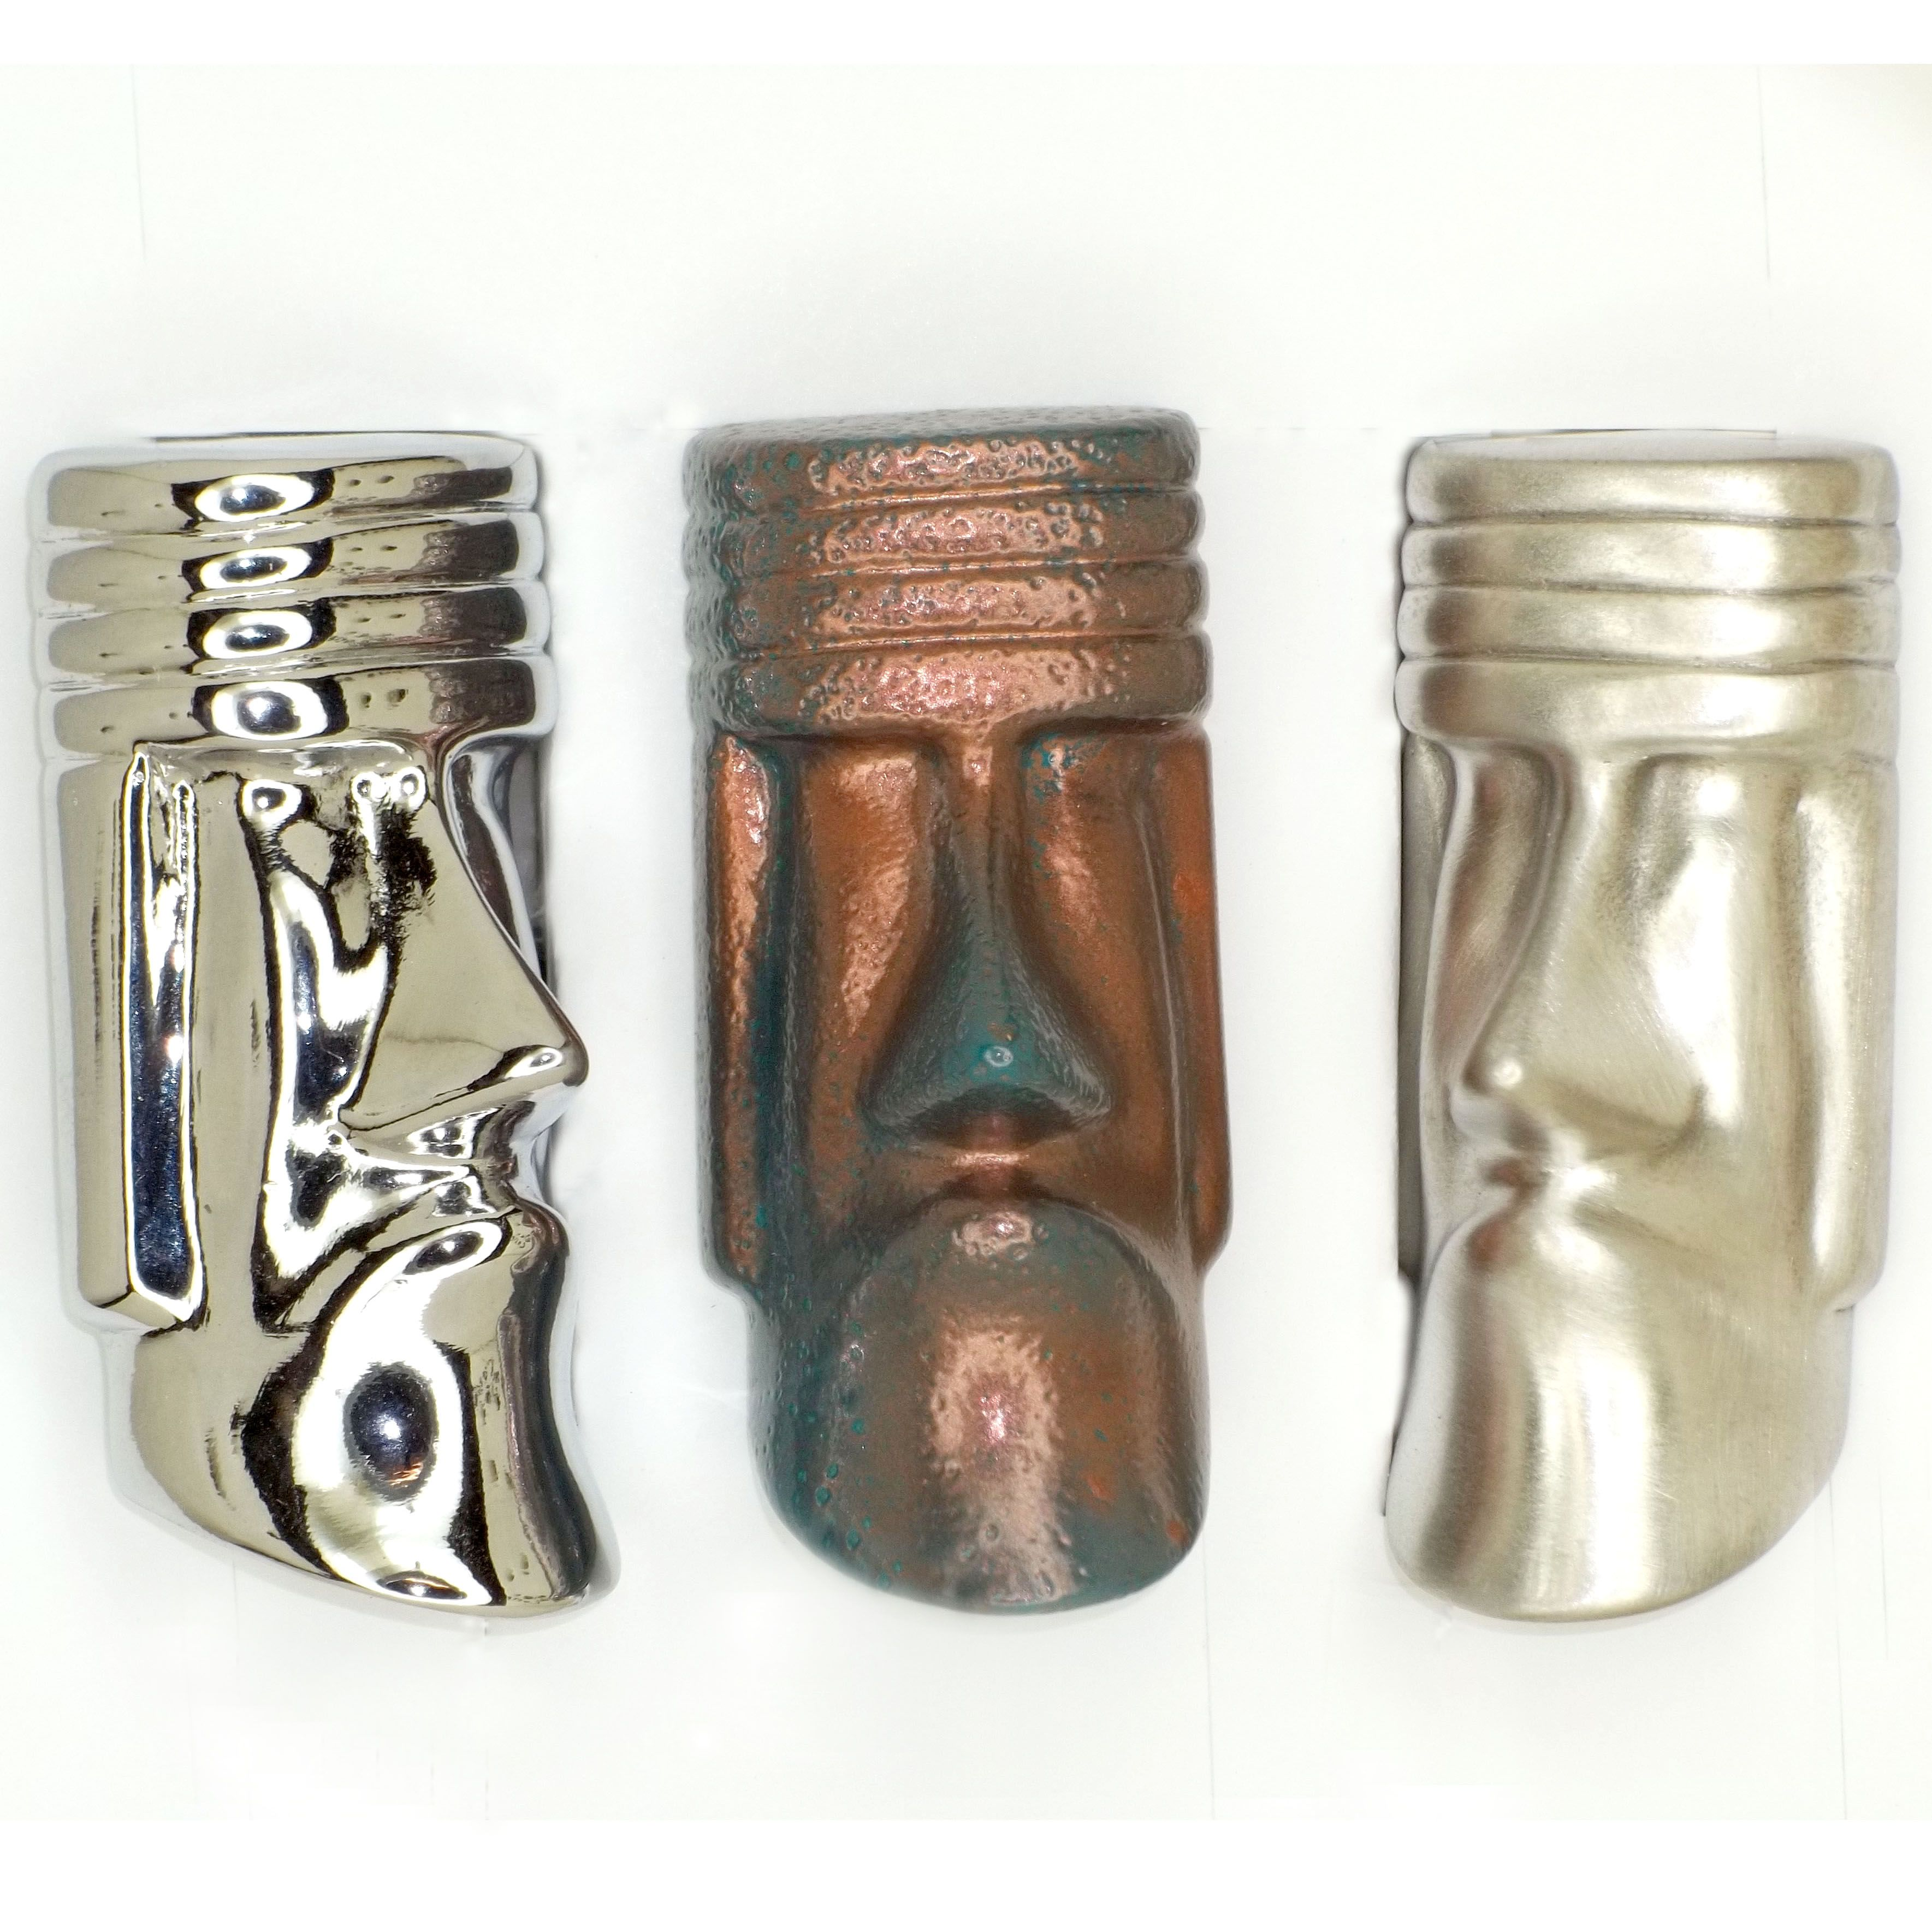 Custom Cabinet Pulls Tiki Head Cabinet Pulls Cast In Fine Pewter Finished In Brushed